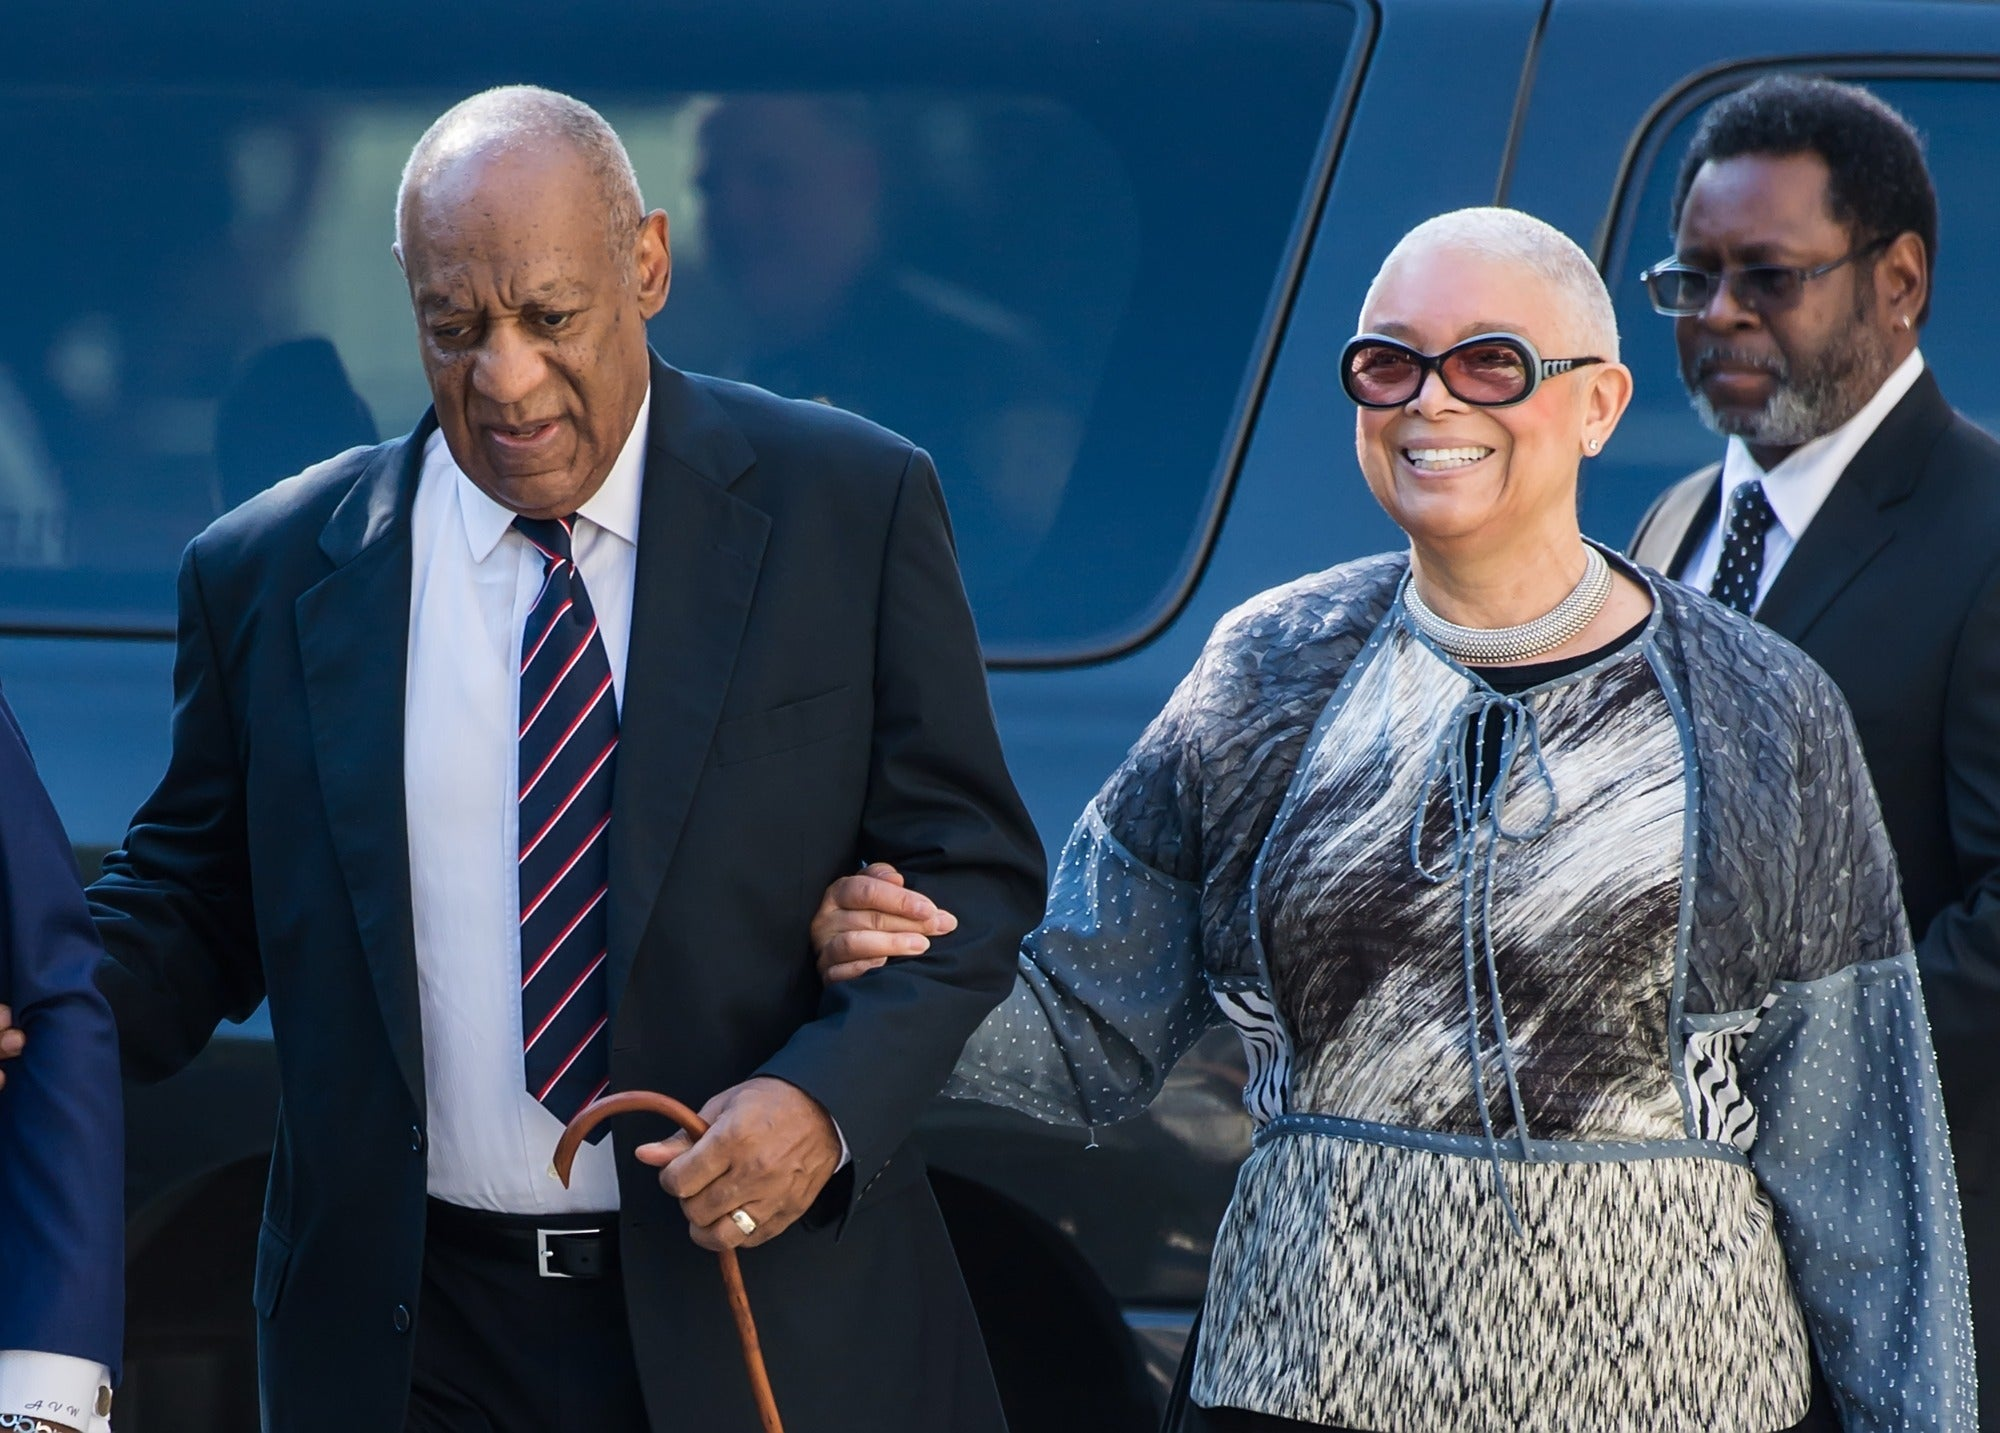 Bill Cosby is a victim of 'mob justice' and accuser lied under oath, says Cosby's wife